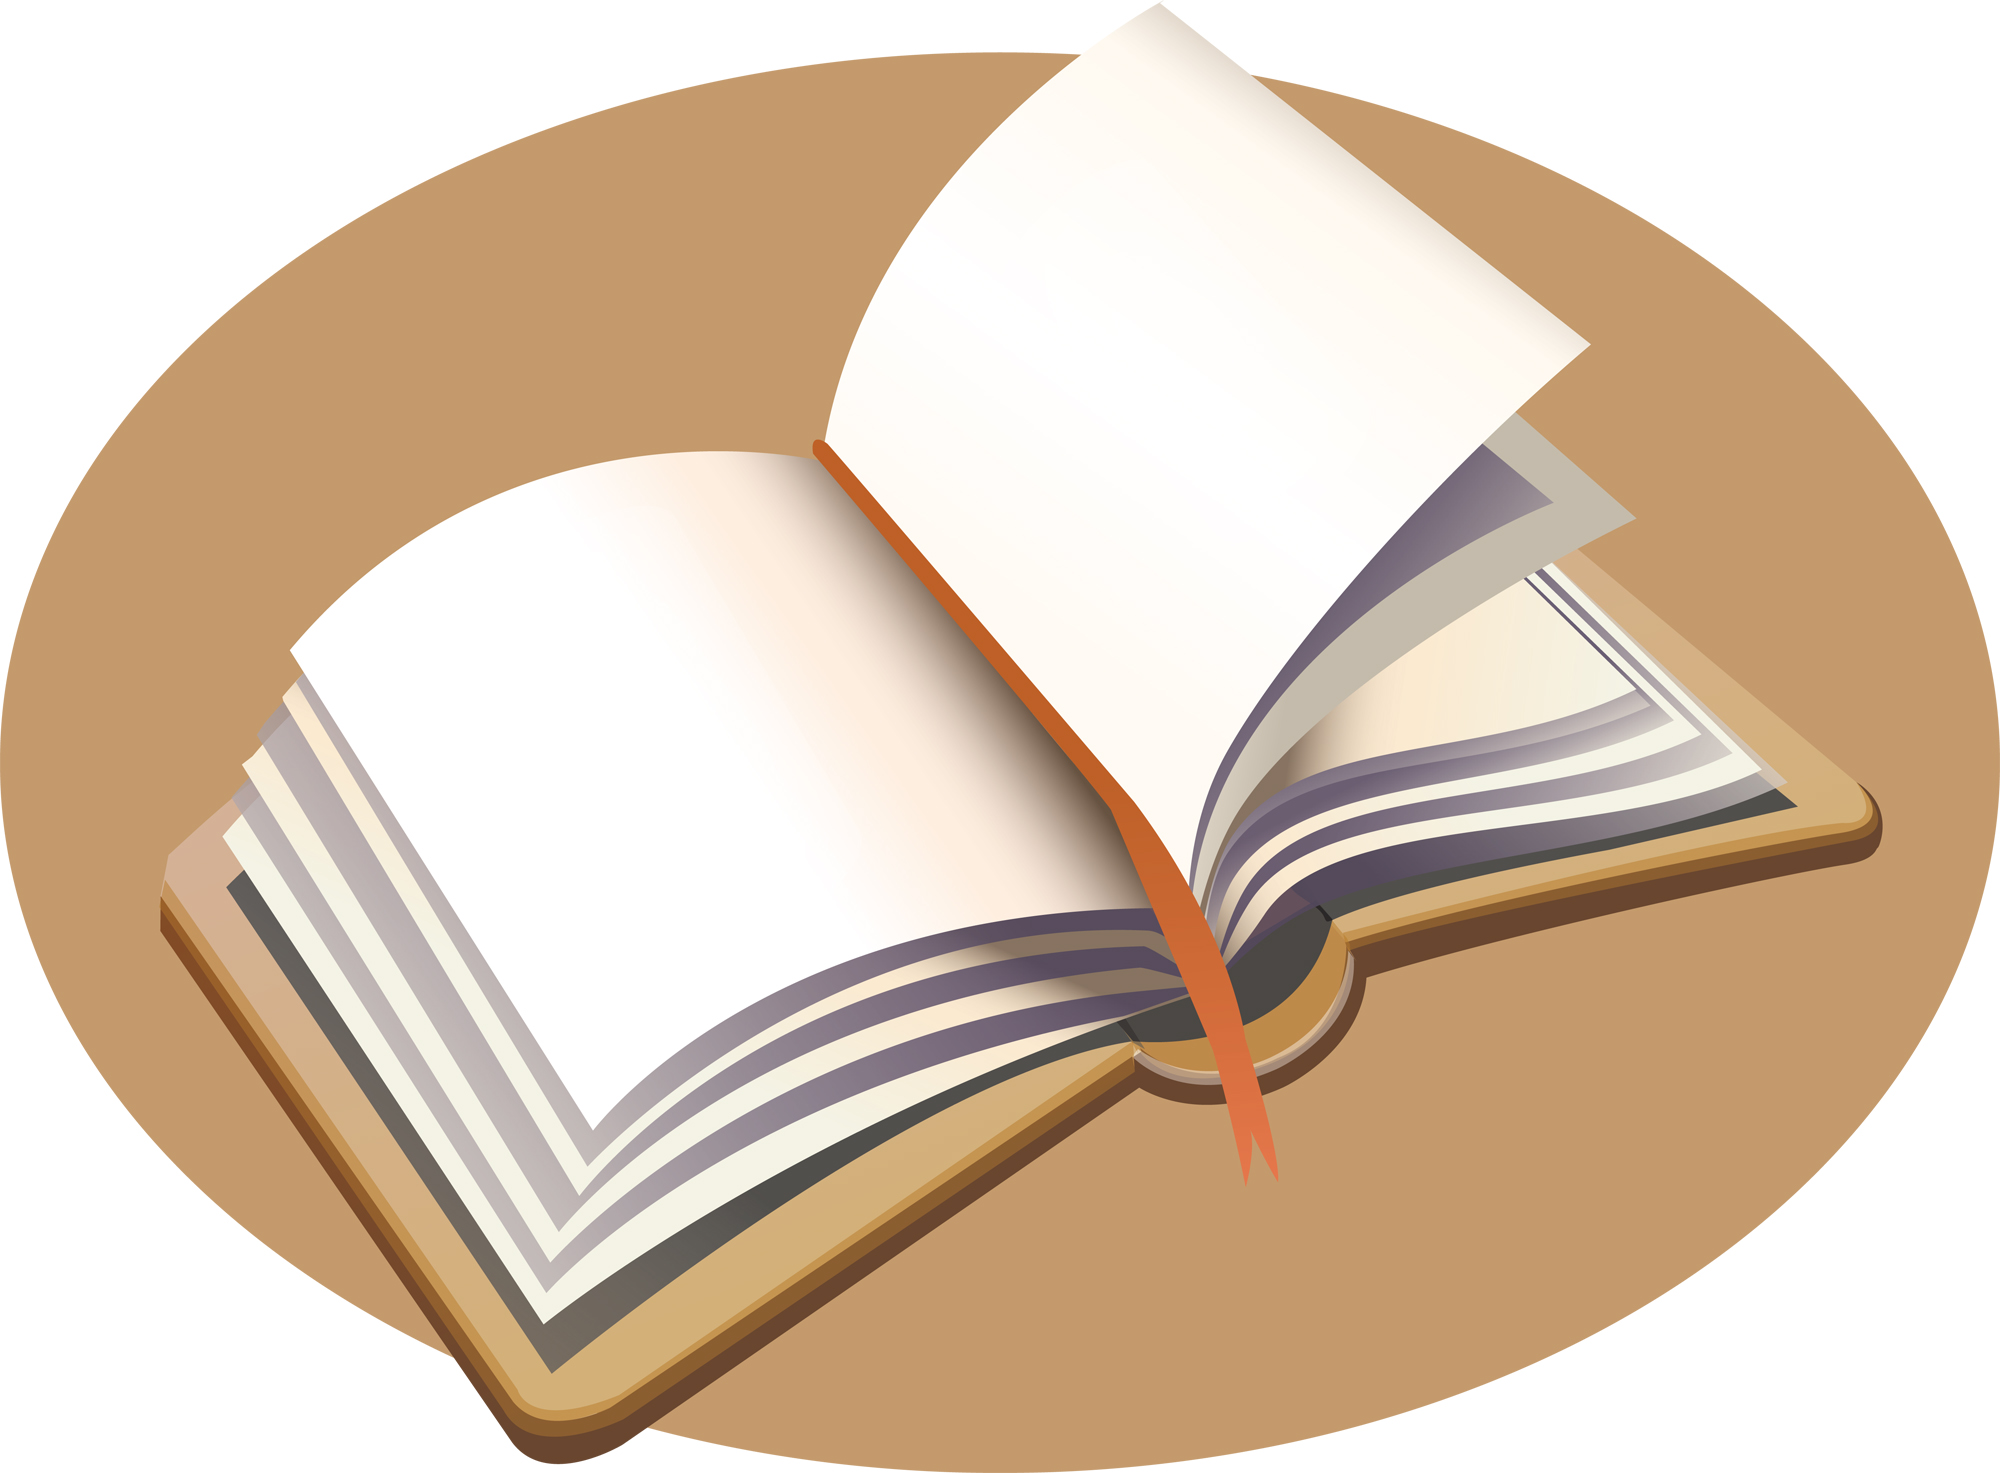 Open Book With Words Coming Out Clipart Open Book With Words Coming